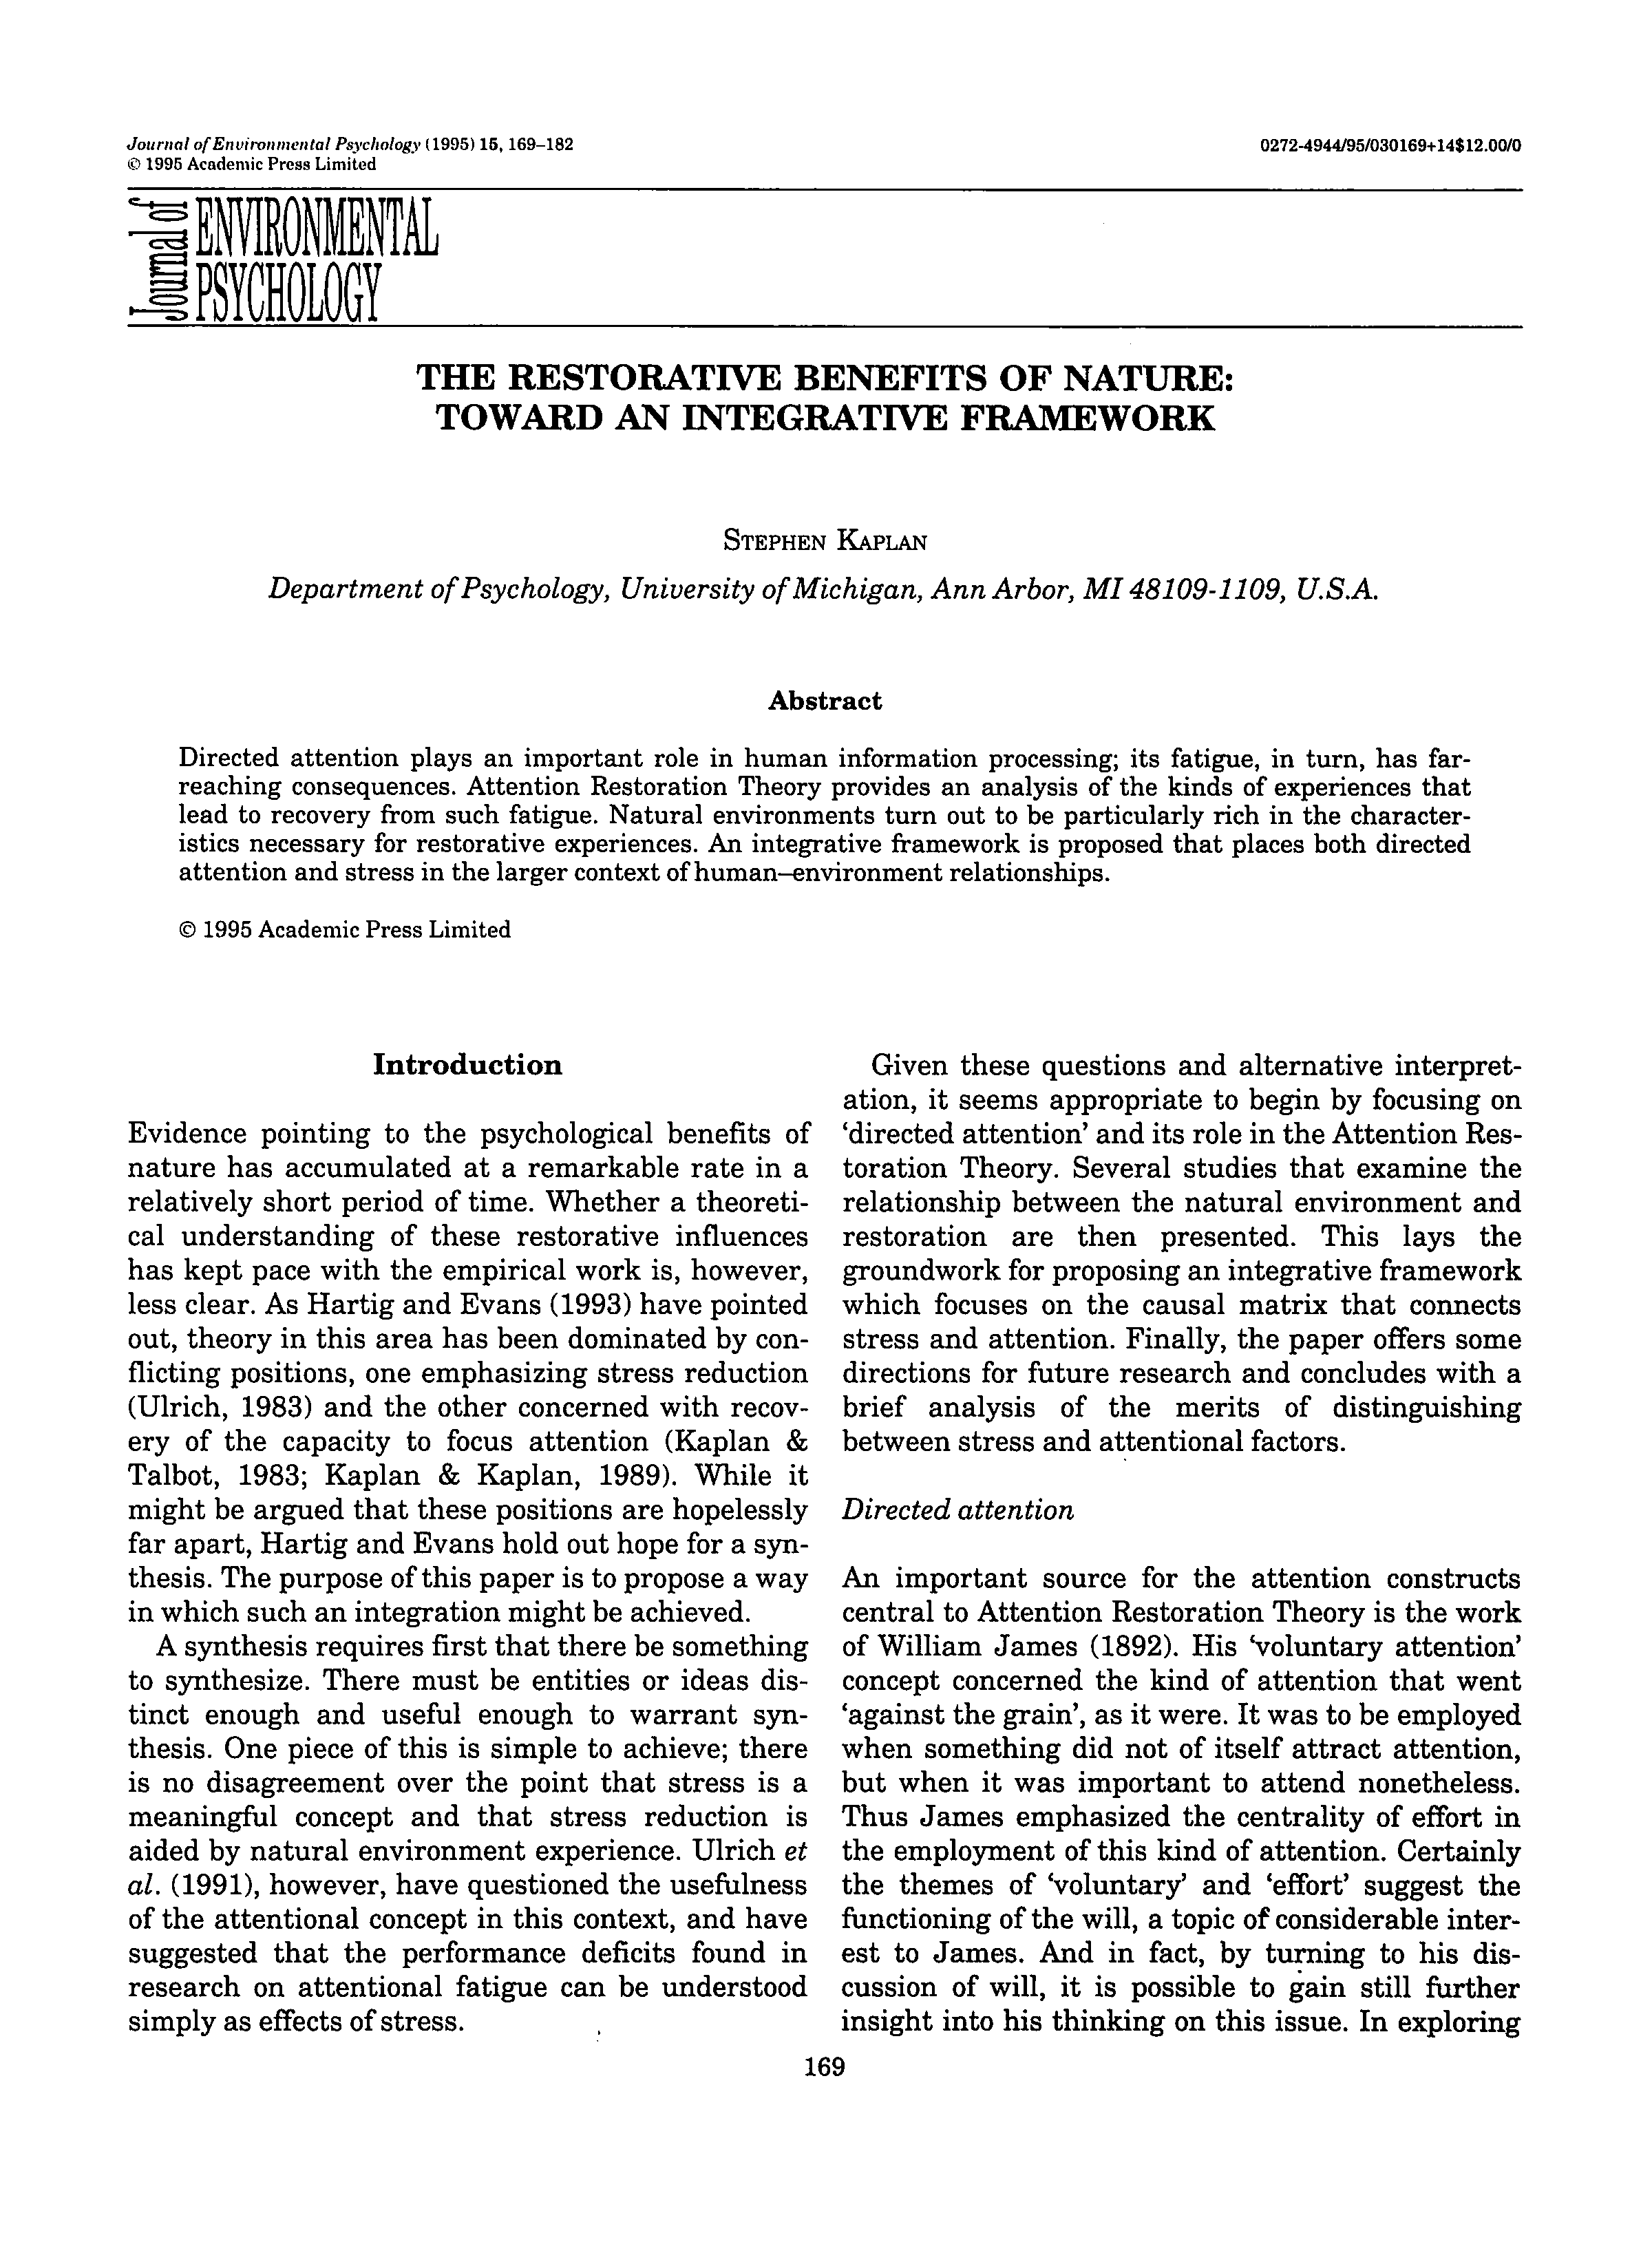 Pages from Kaplan 1995 - The restorative benefits of nature - Toward an integrative framework.png